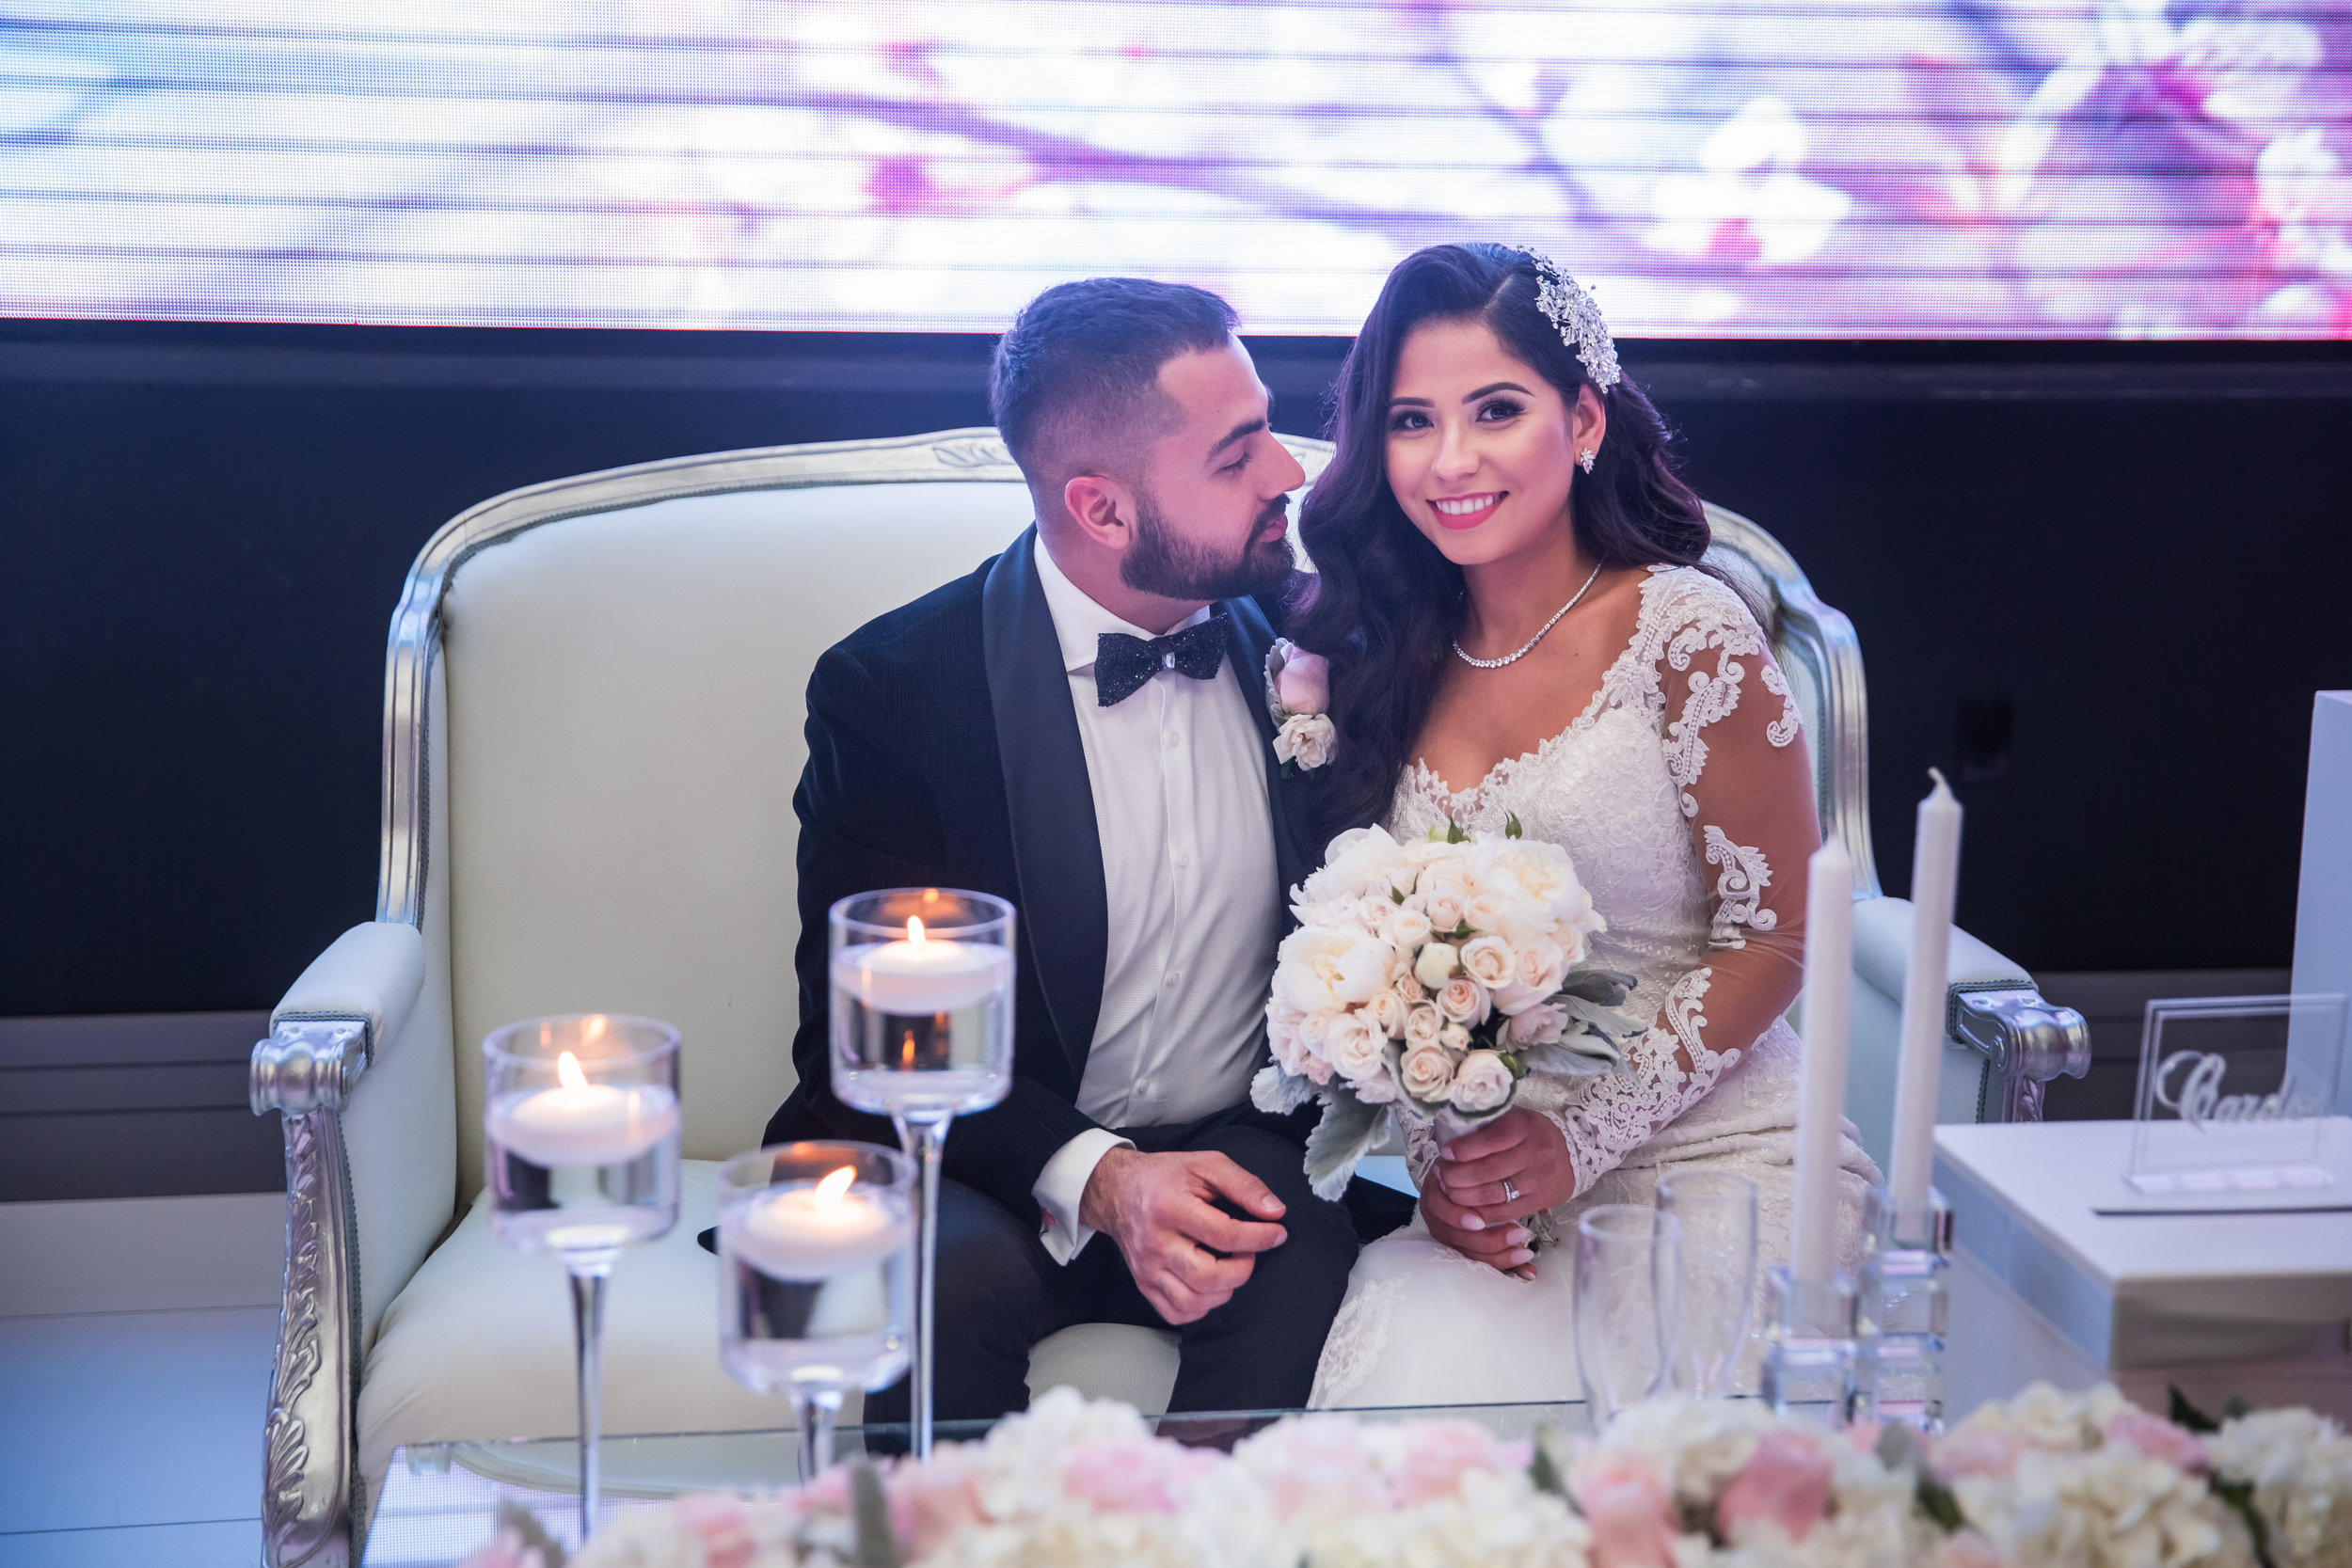 Romantic Wedding Theme Feature - Glendale, CA - Legacy Ballroom - Newlywed couple sitting together on a love seat in front a table decorated with flowers and candles.